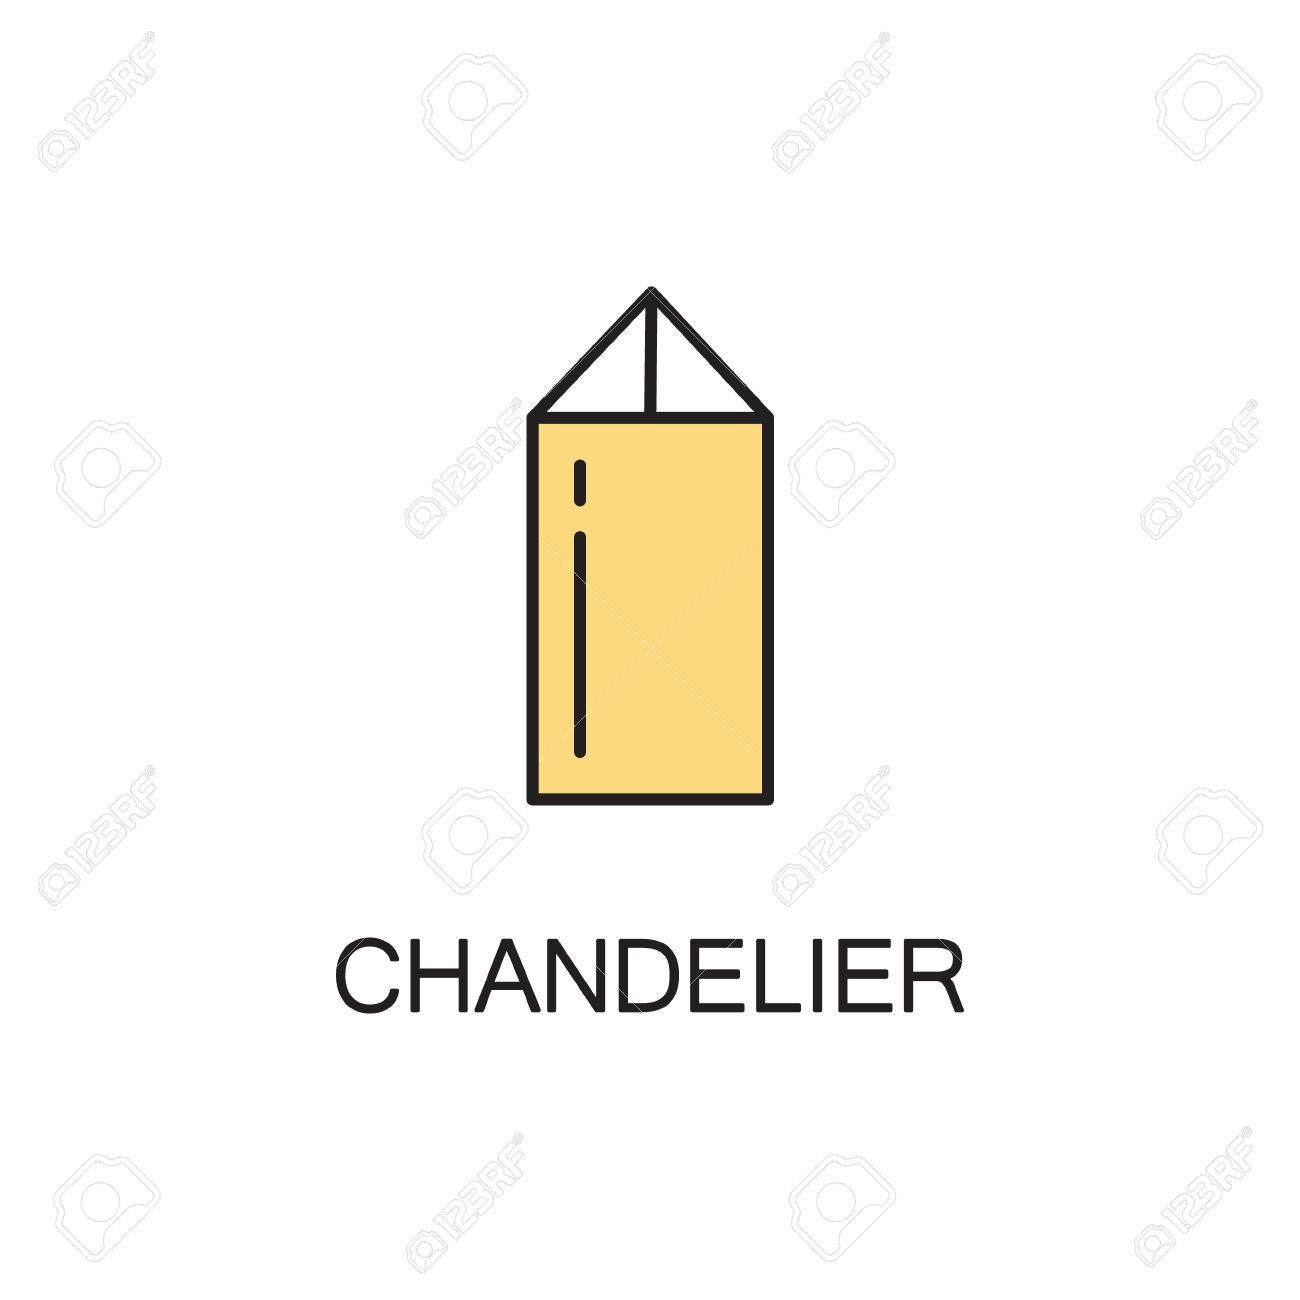 Chandelier line icon high quality pictogram of homes furniture high quality pictogram of homes furniture outline vector symbol for design ccuart Image collections